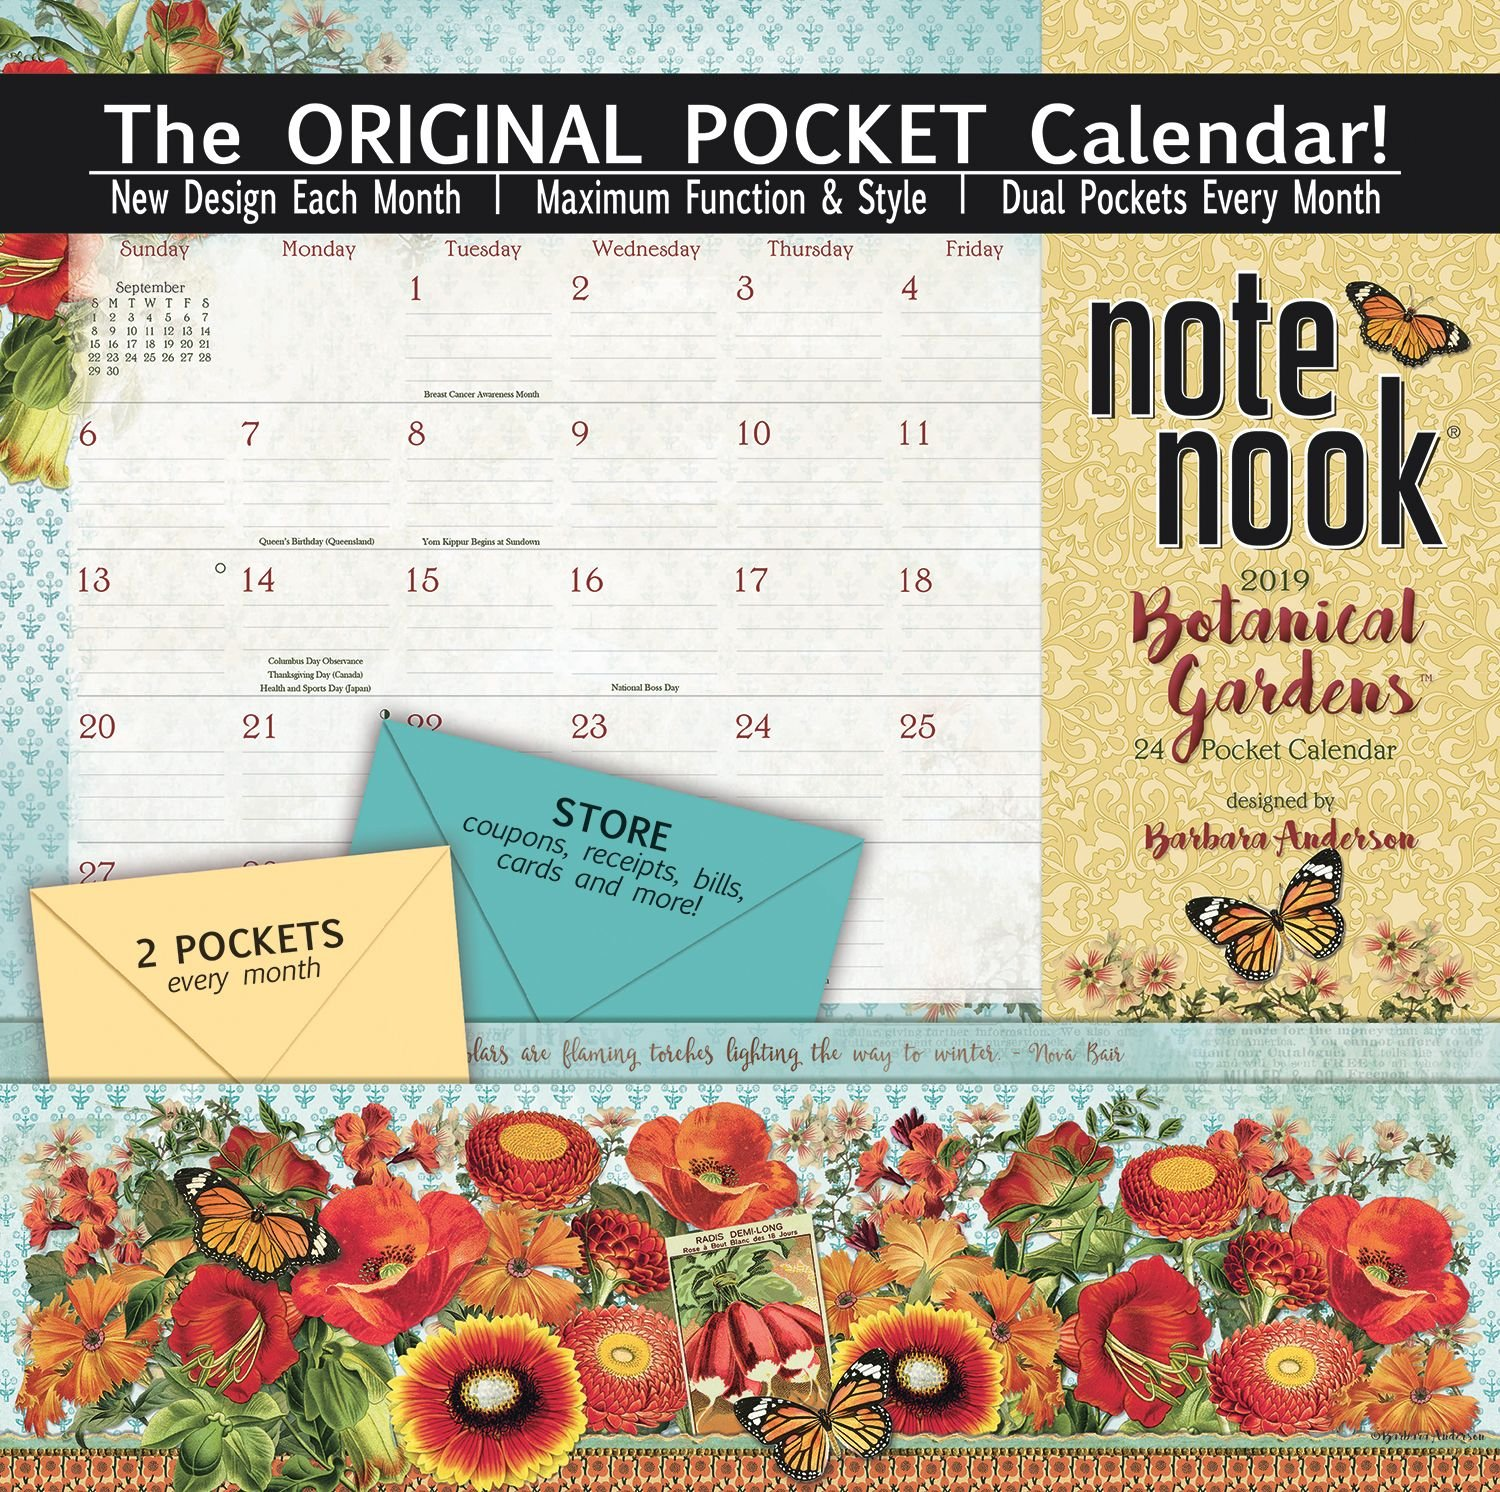 Wells St. by LANG - 2019 Note Nook Organizational Wall Calendar -Botanical Gardens,  Artwork by Barb Anderson - 24 Storage Pockets - 12 Months - 11 3/4 x 13 1/4 Inches The LANG Companies 19997007193